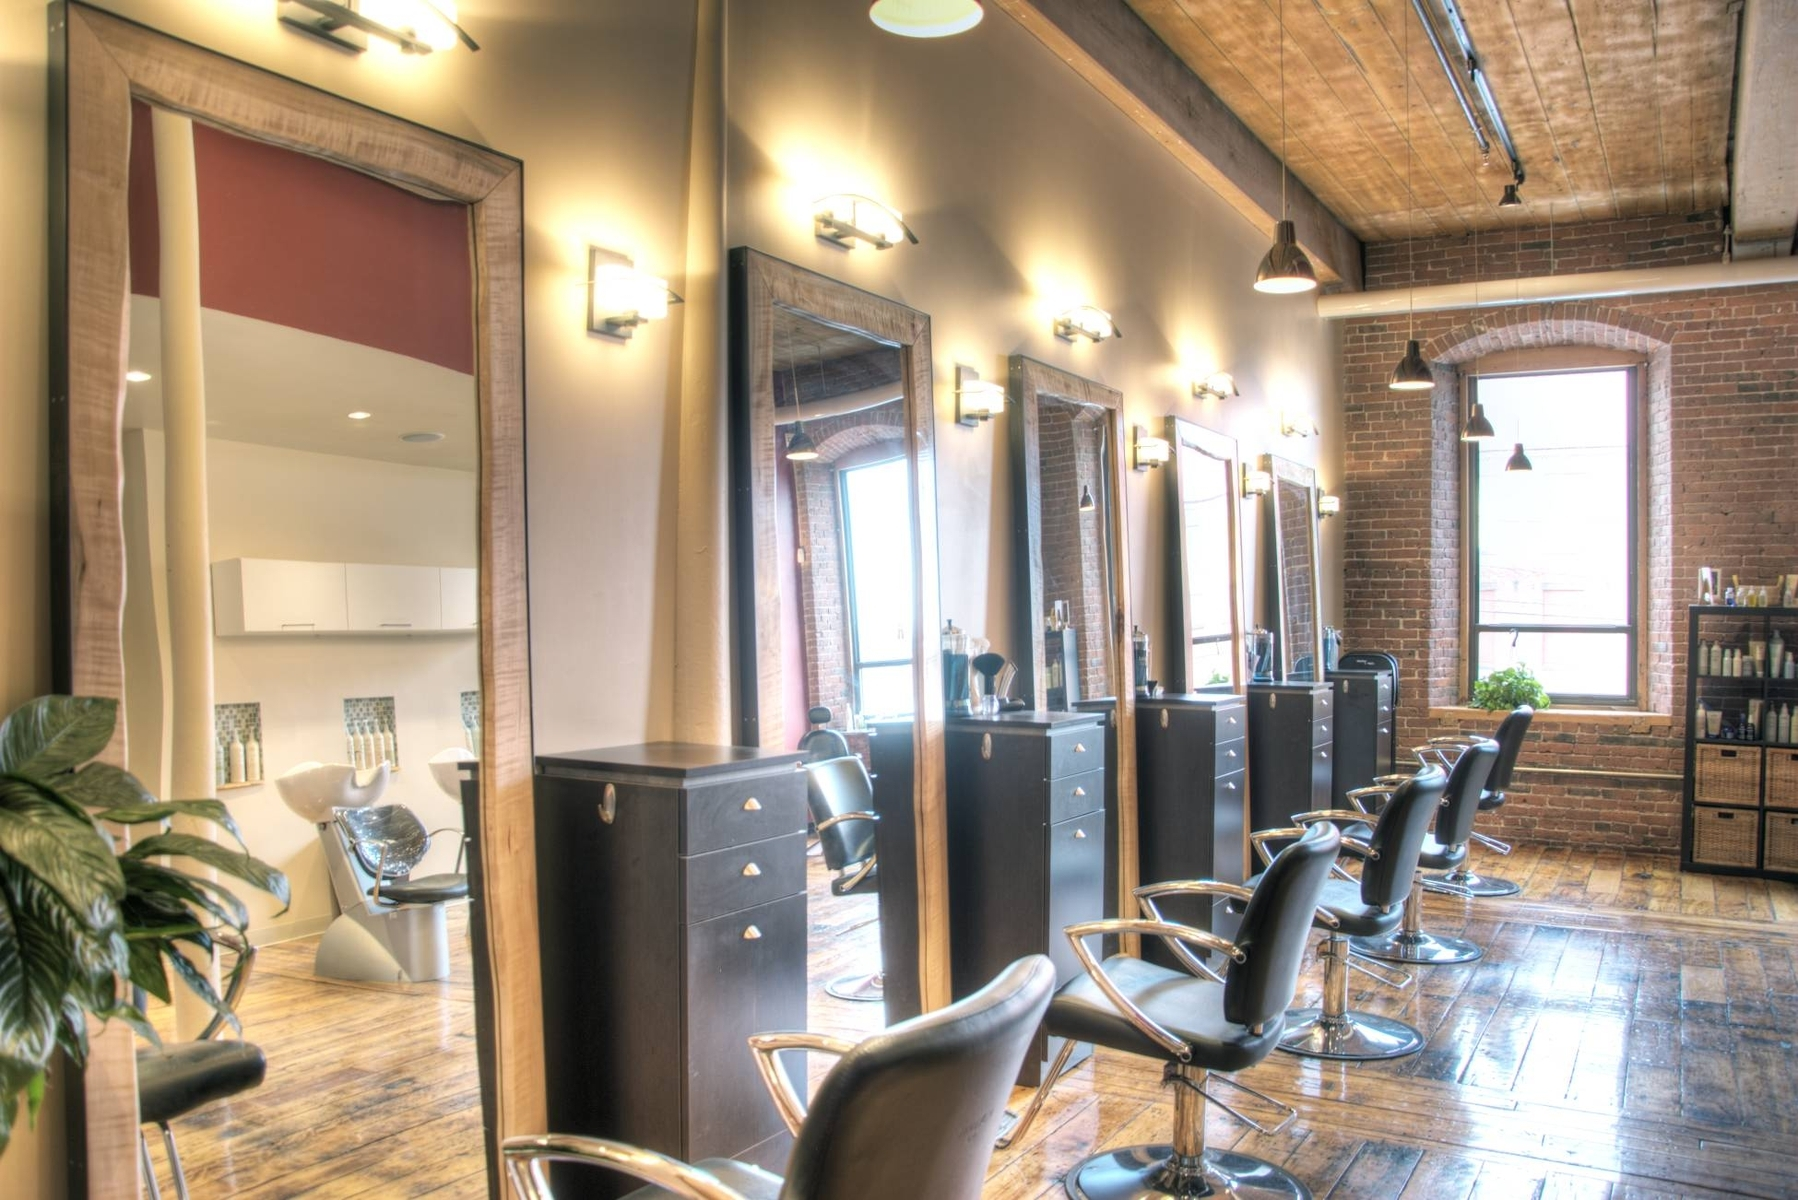 Mirrors On The Wall Salon